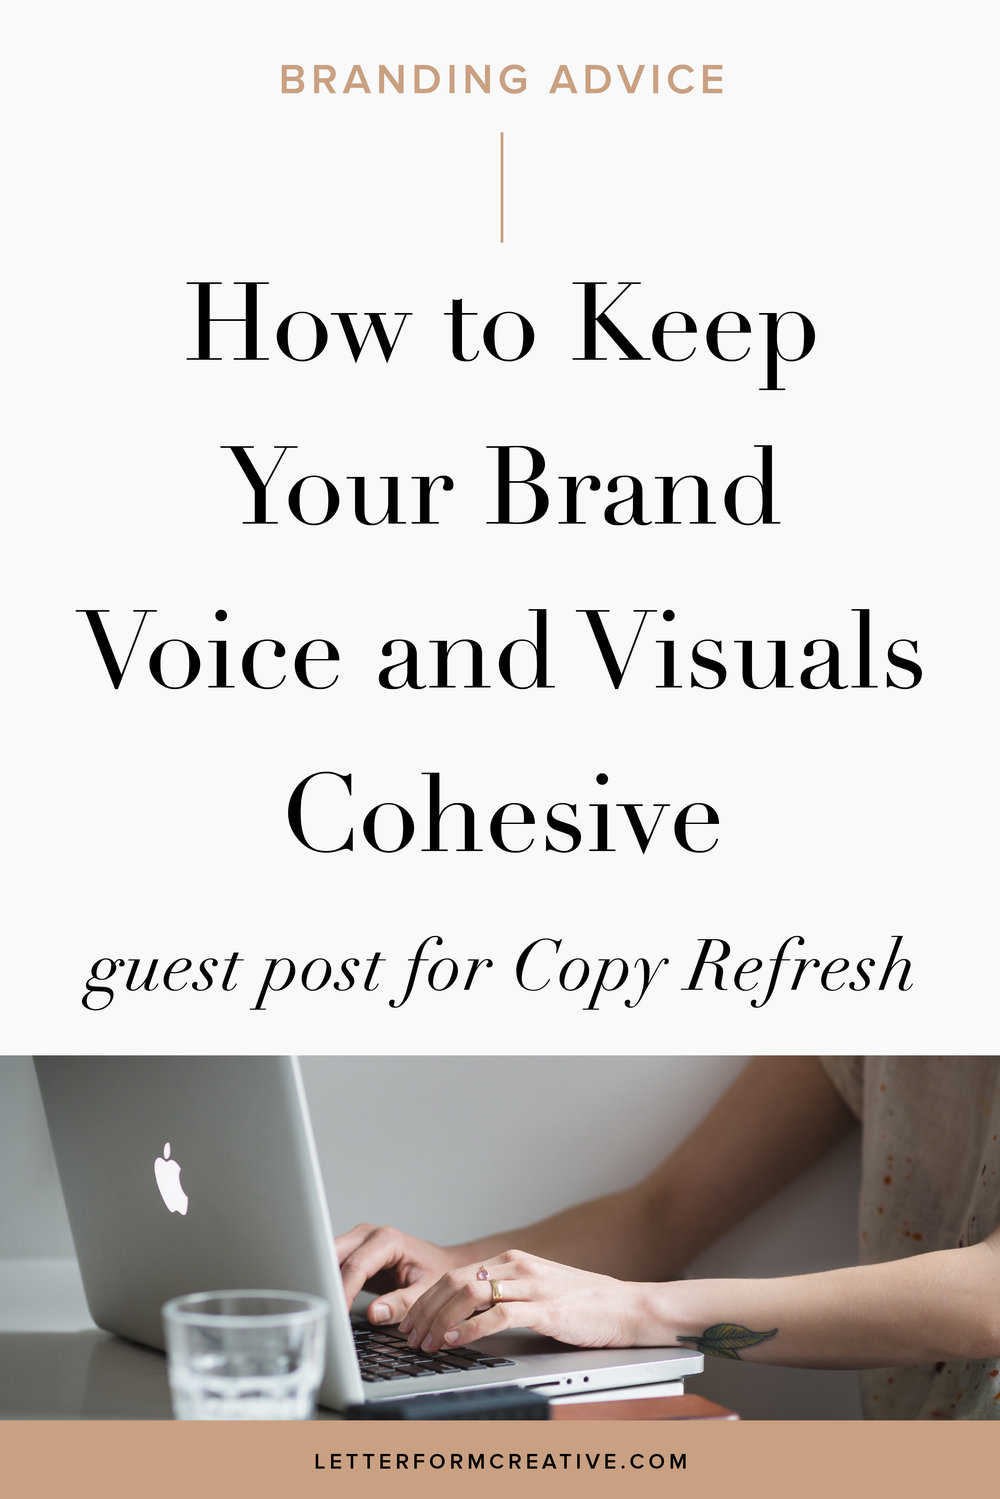 Need some professional branding and copywriting advice? This article has helpful tips for your small business that you can implement yourself. It's full of ideas for keeping your your visual design and copy cohesive throughout your marketing, Blogging, Emailing, website, and on social media. It includes some creative copy-writing prompts to infuse your personality into your copywriting. Click through to gather some inspiration!